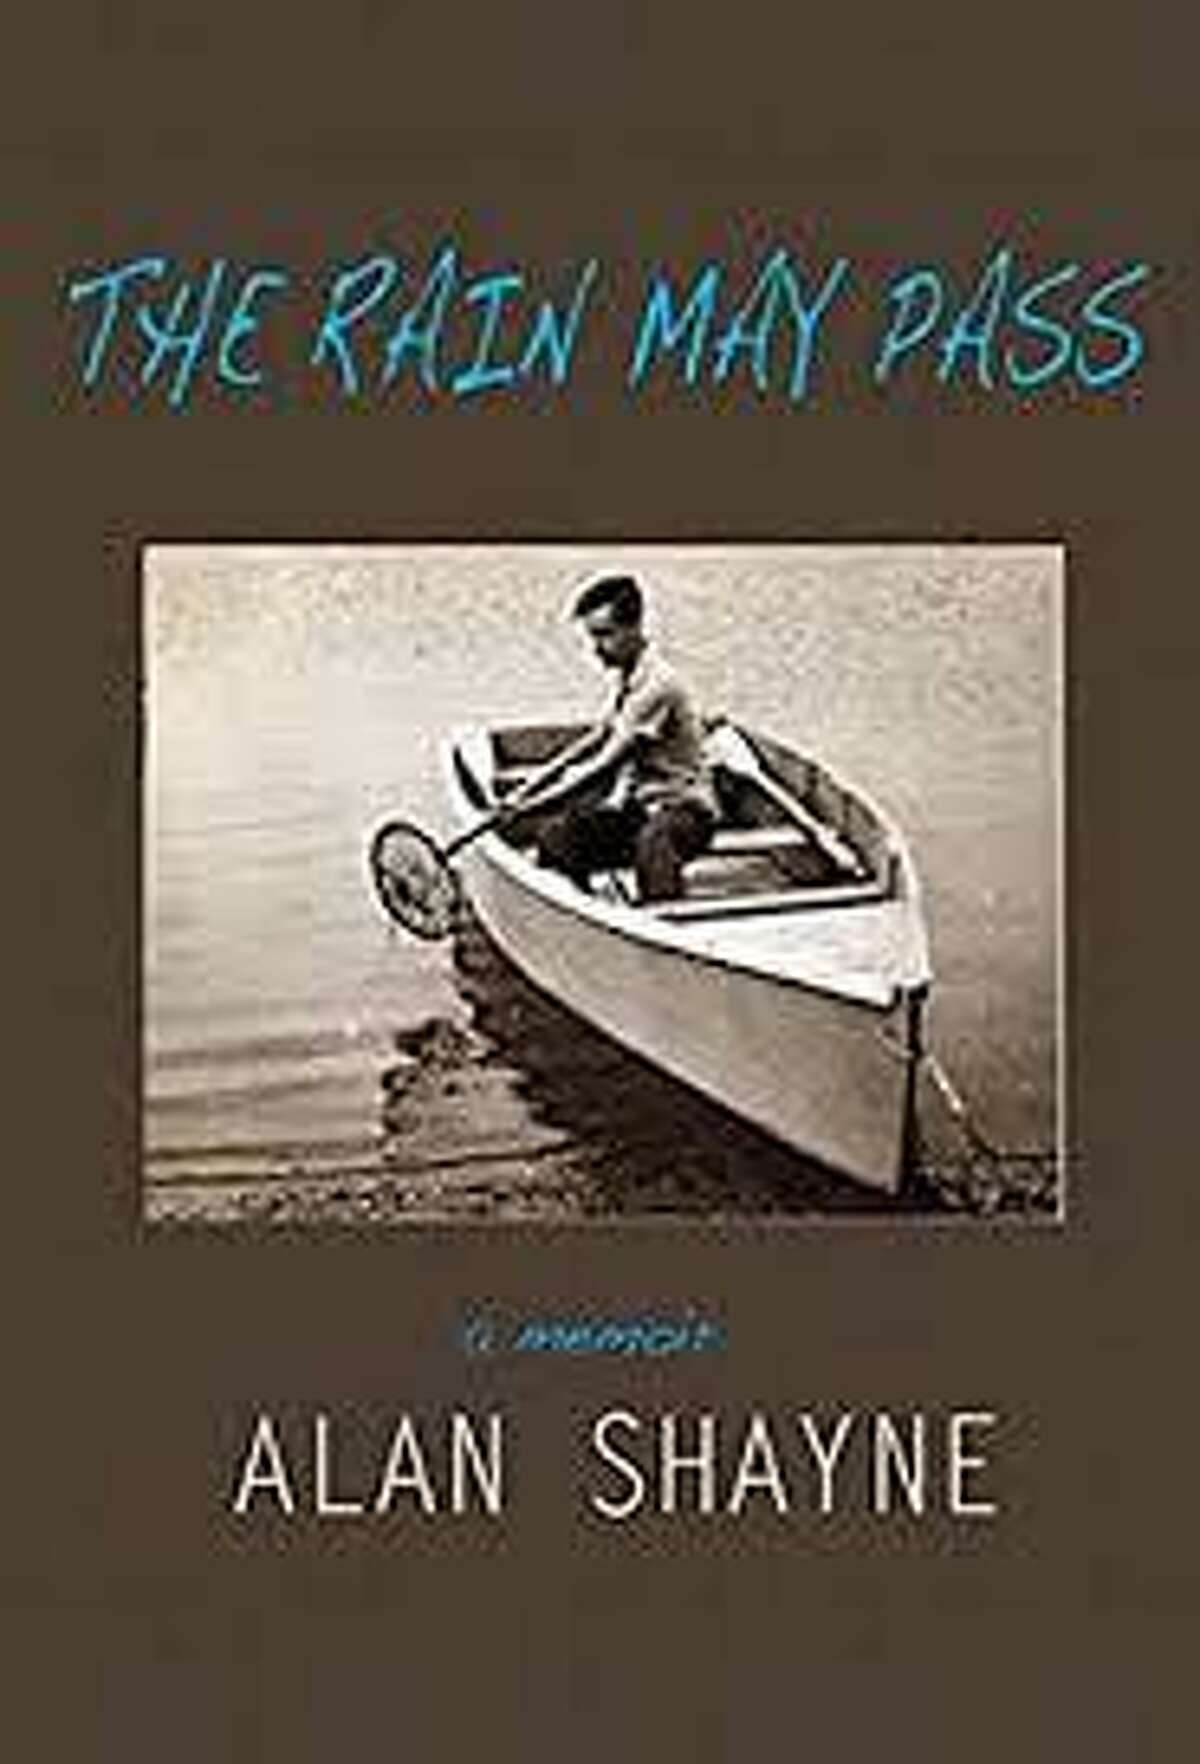 Kent Memorial Library and House of Books in Kent will co-present a book talk and virtual signing to present the new work of Washington resident Alan Shayne Oct. 7. Shayne will discuss his coming-of-age memoir